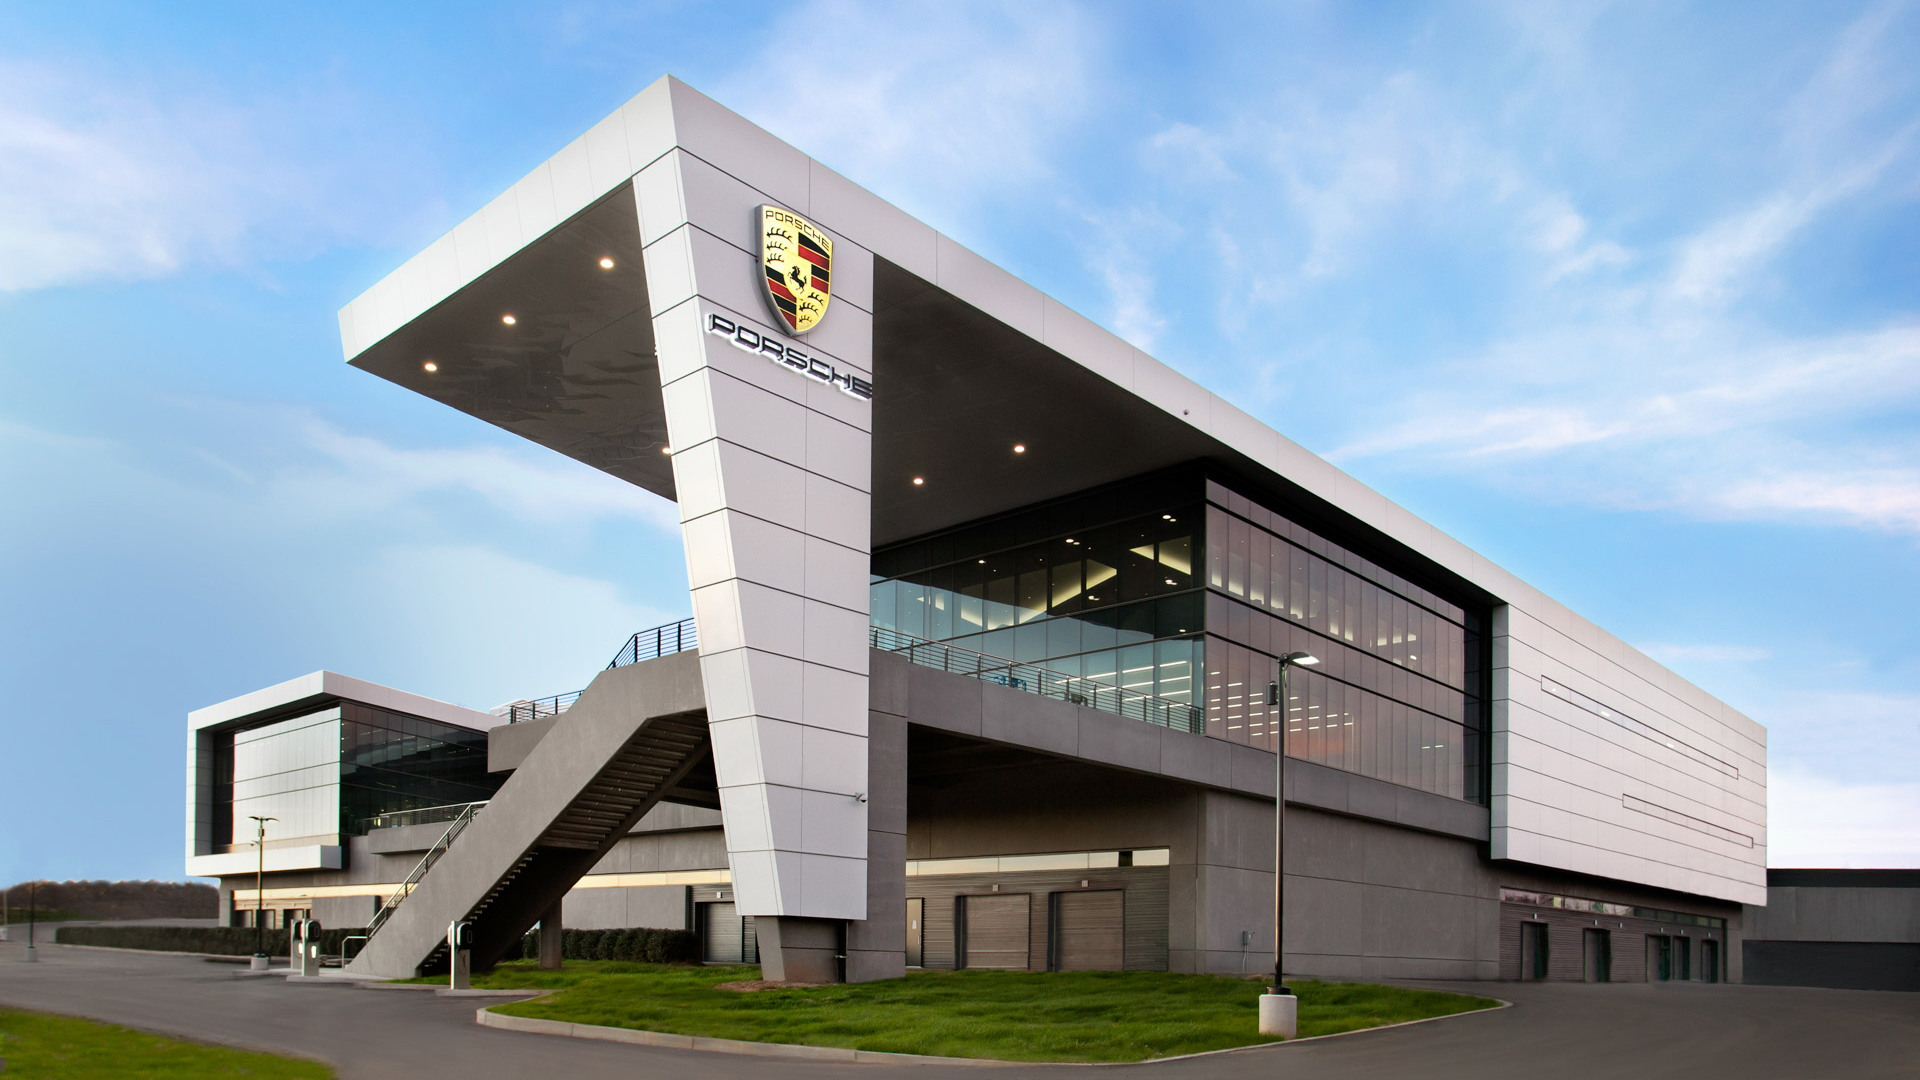 Porsche's U.S. headquarters and Experience Center in Atlanta, Georgia